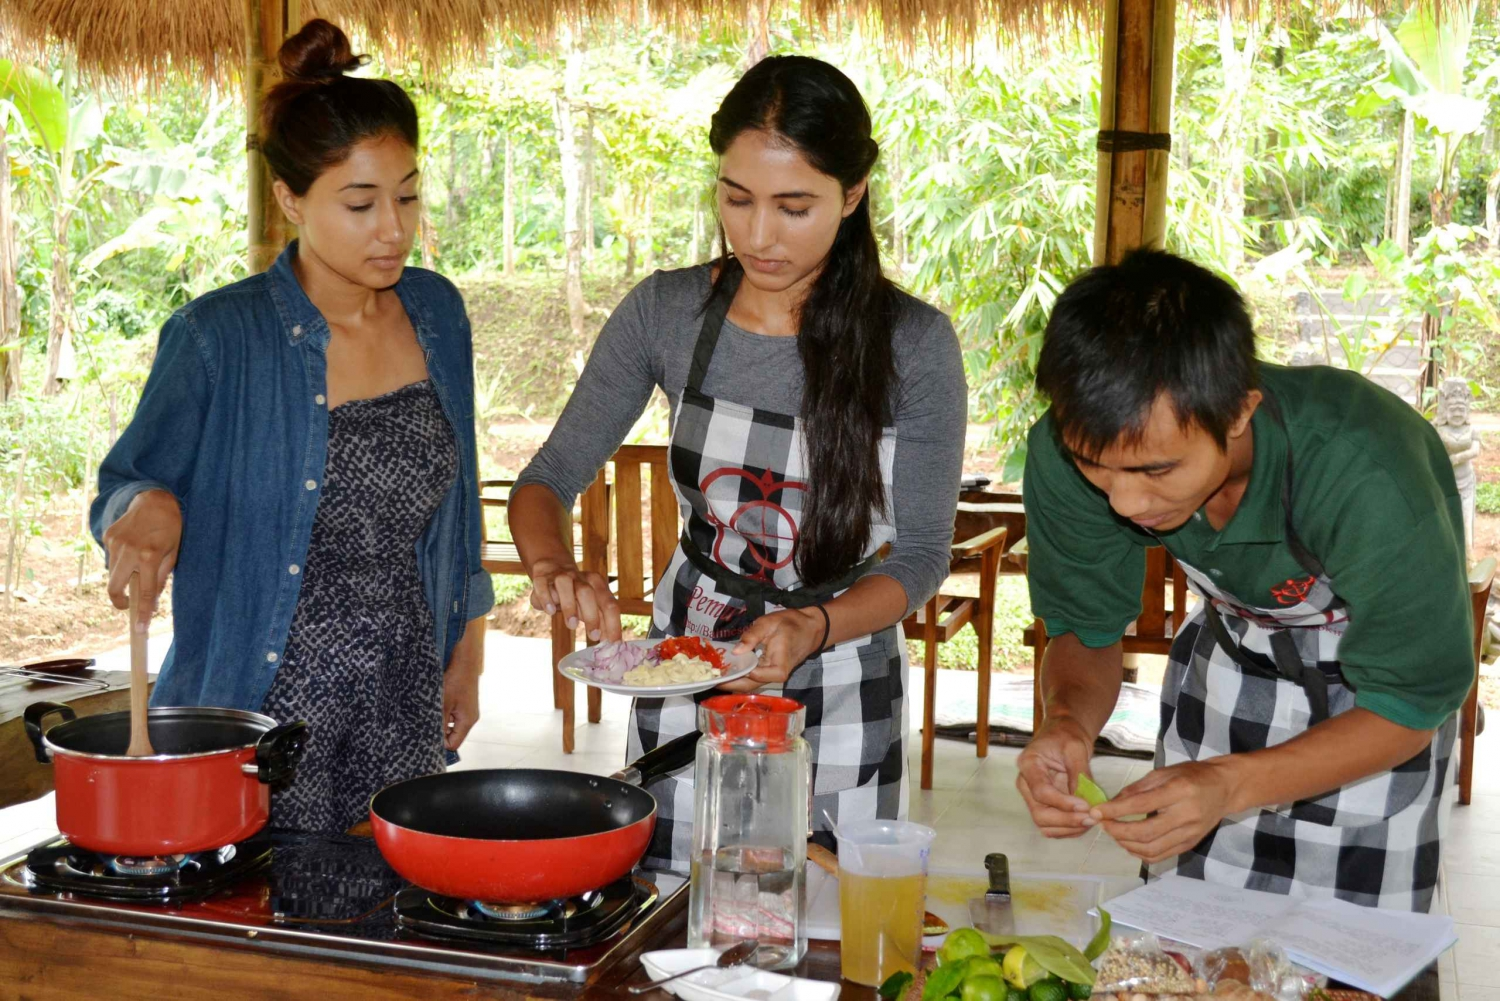 From Ubud: Balinese Cooking Class at an Organic Farm